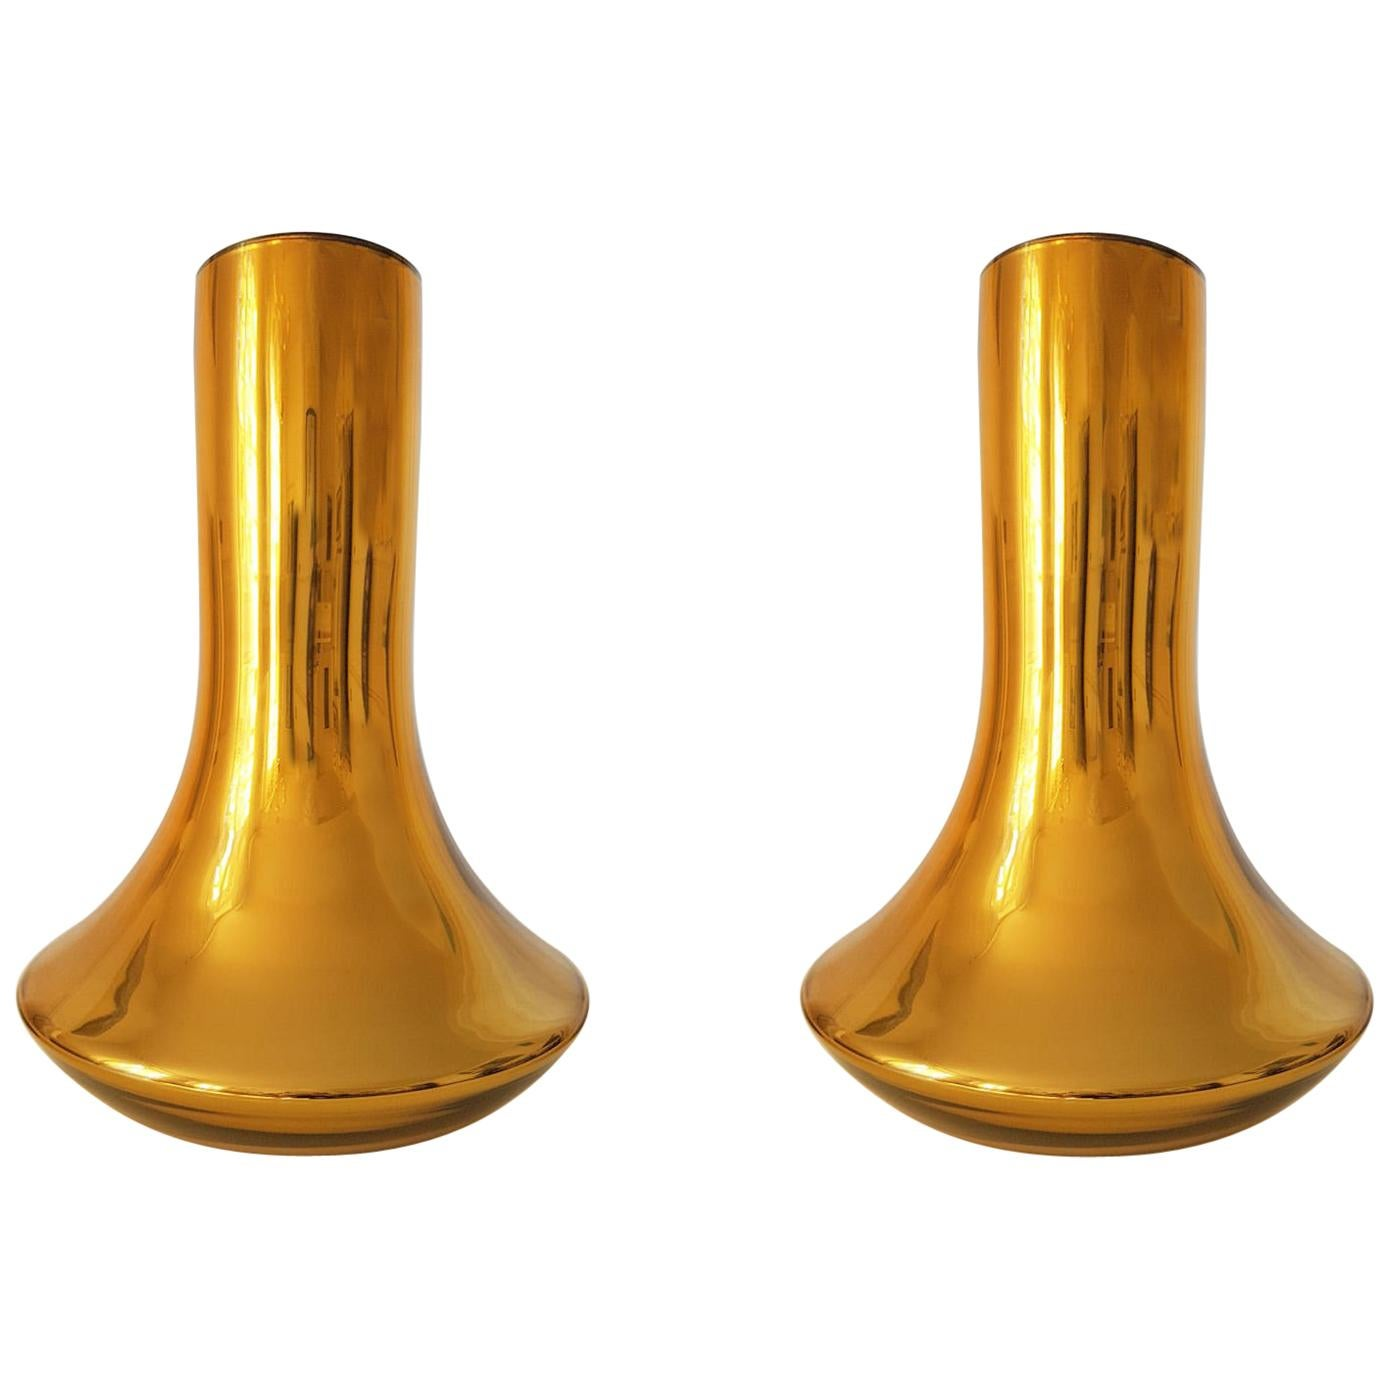 Pair of Mid-Century Modern Gold Mirrored Murano Glass Large Vases, Italy 1980s